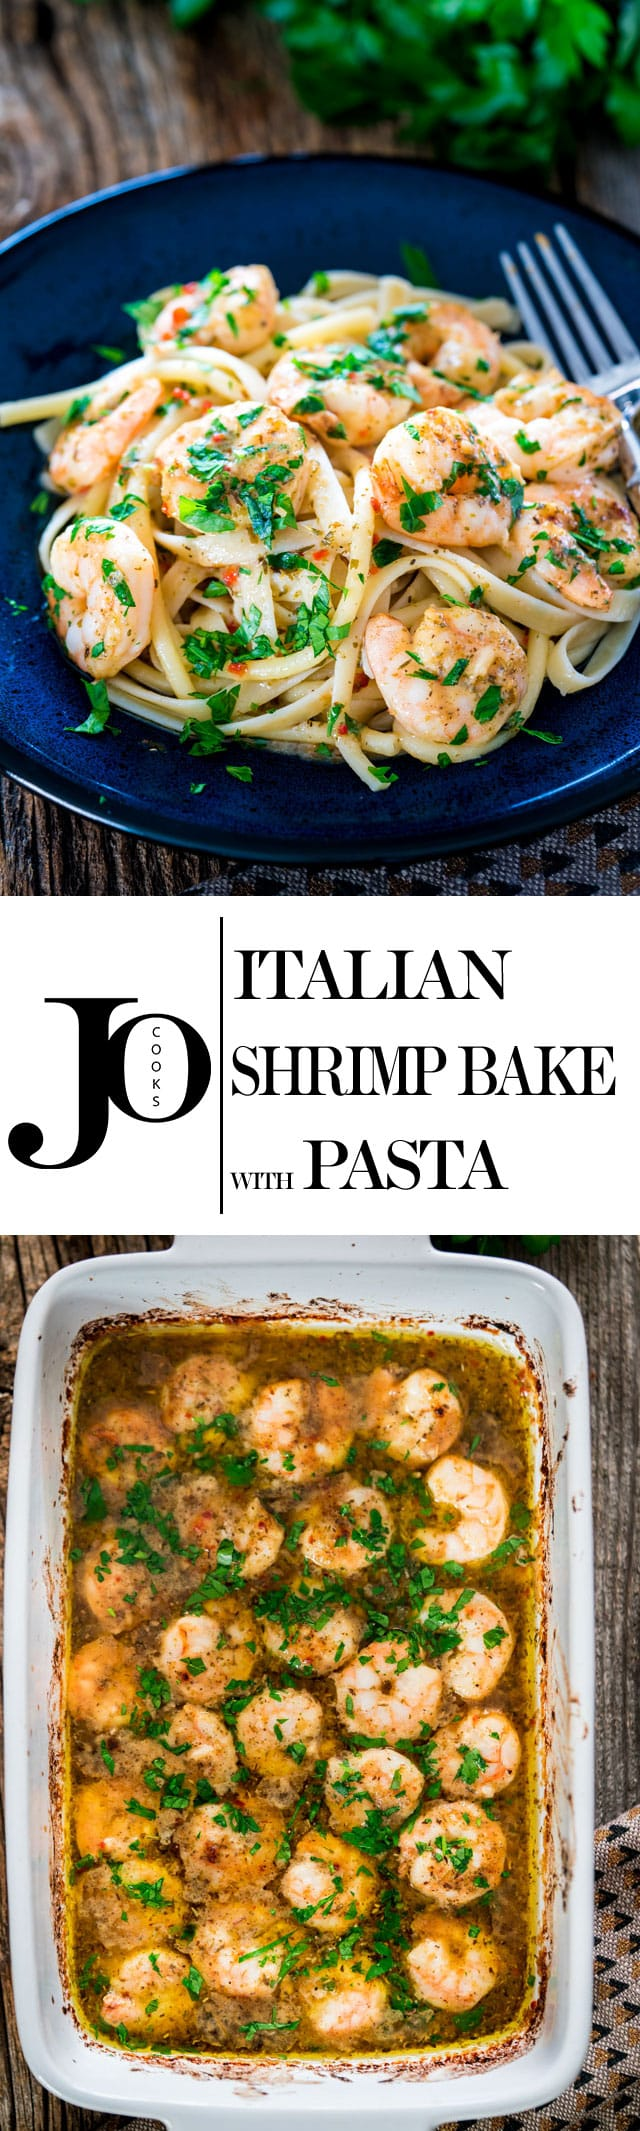 Italian Shrimp Bake with Pasta - couldn't get any easier than pasta dish and it could be on your dinner table in 20 minutes tops! Succulent buttery shrimp in a savory lemon butter sauce served over a bed of pasta. www.jocooks.com #shrimppasta